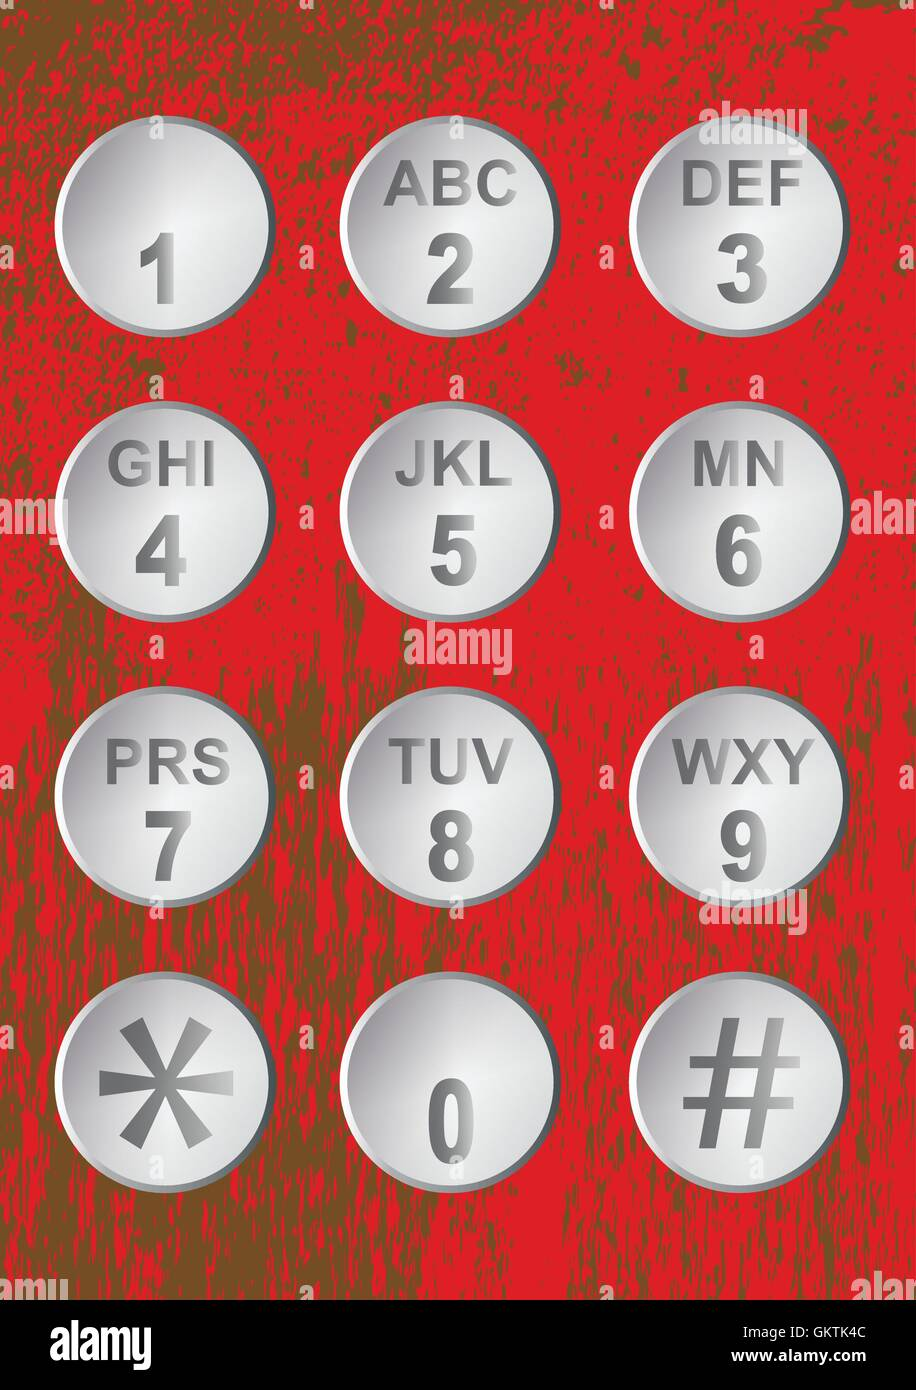 Numerical Code Buttons - Stock Image